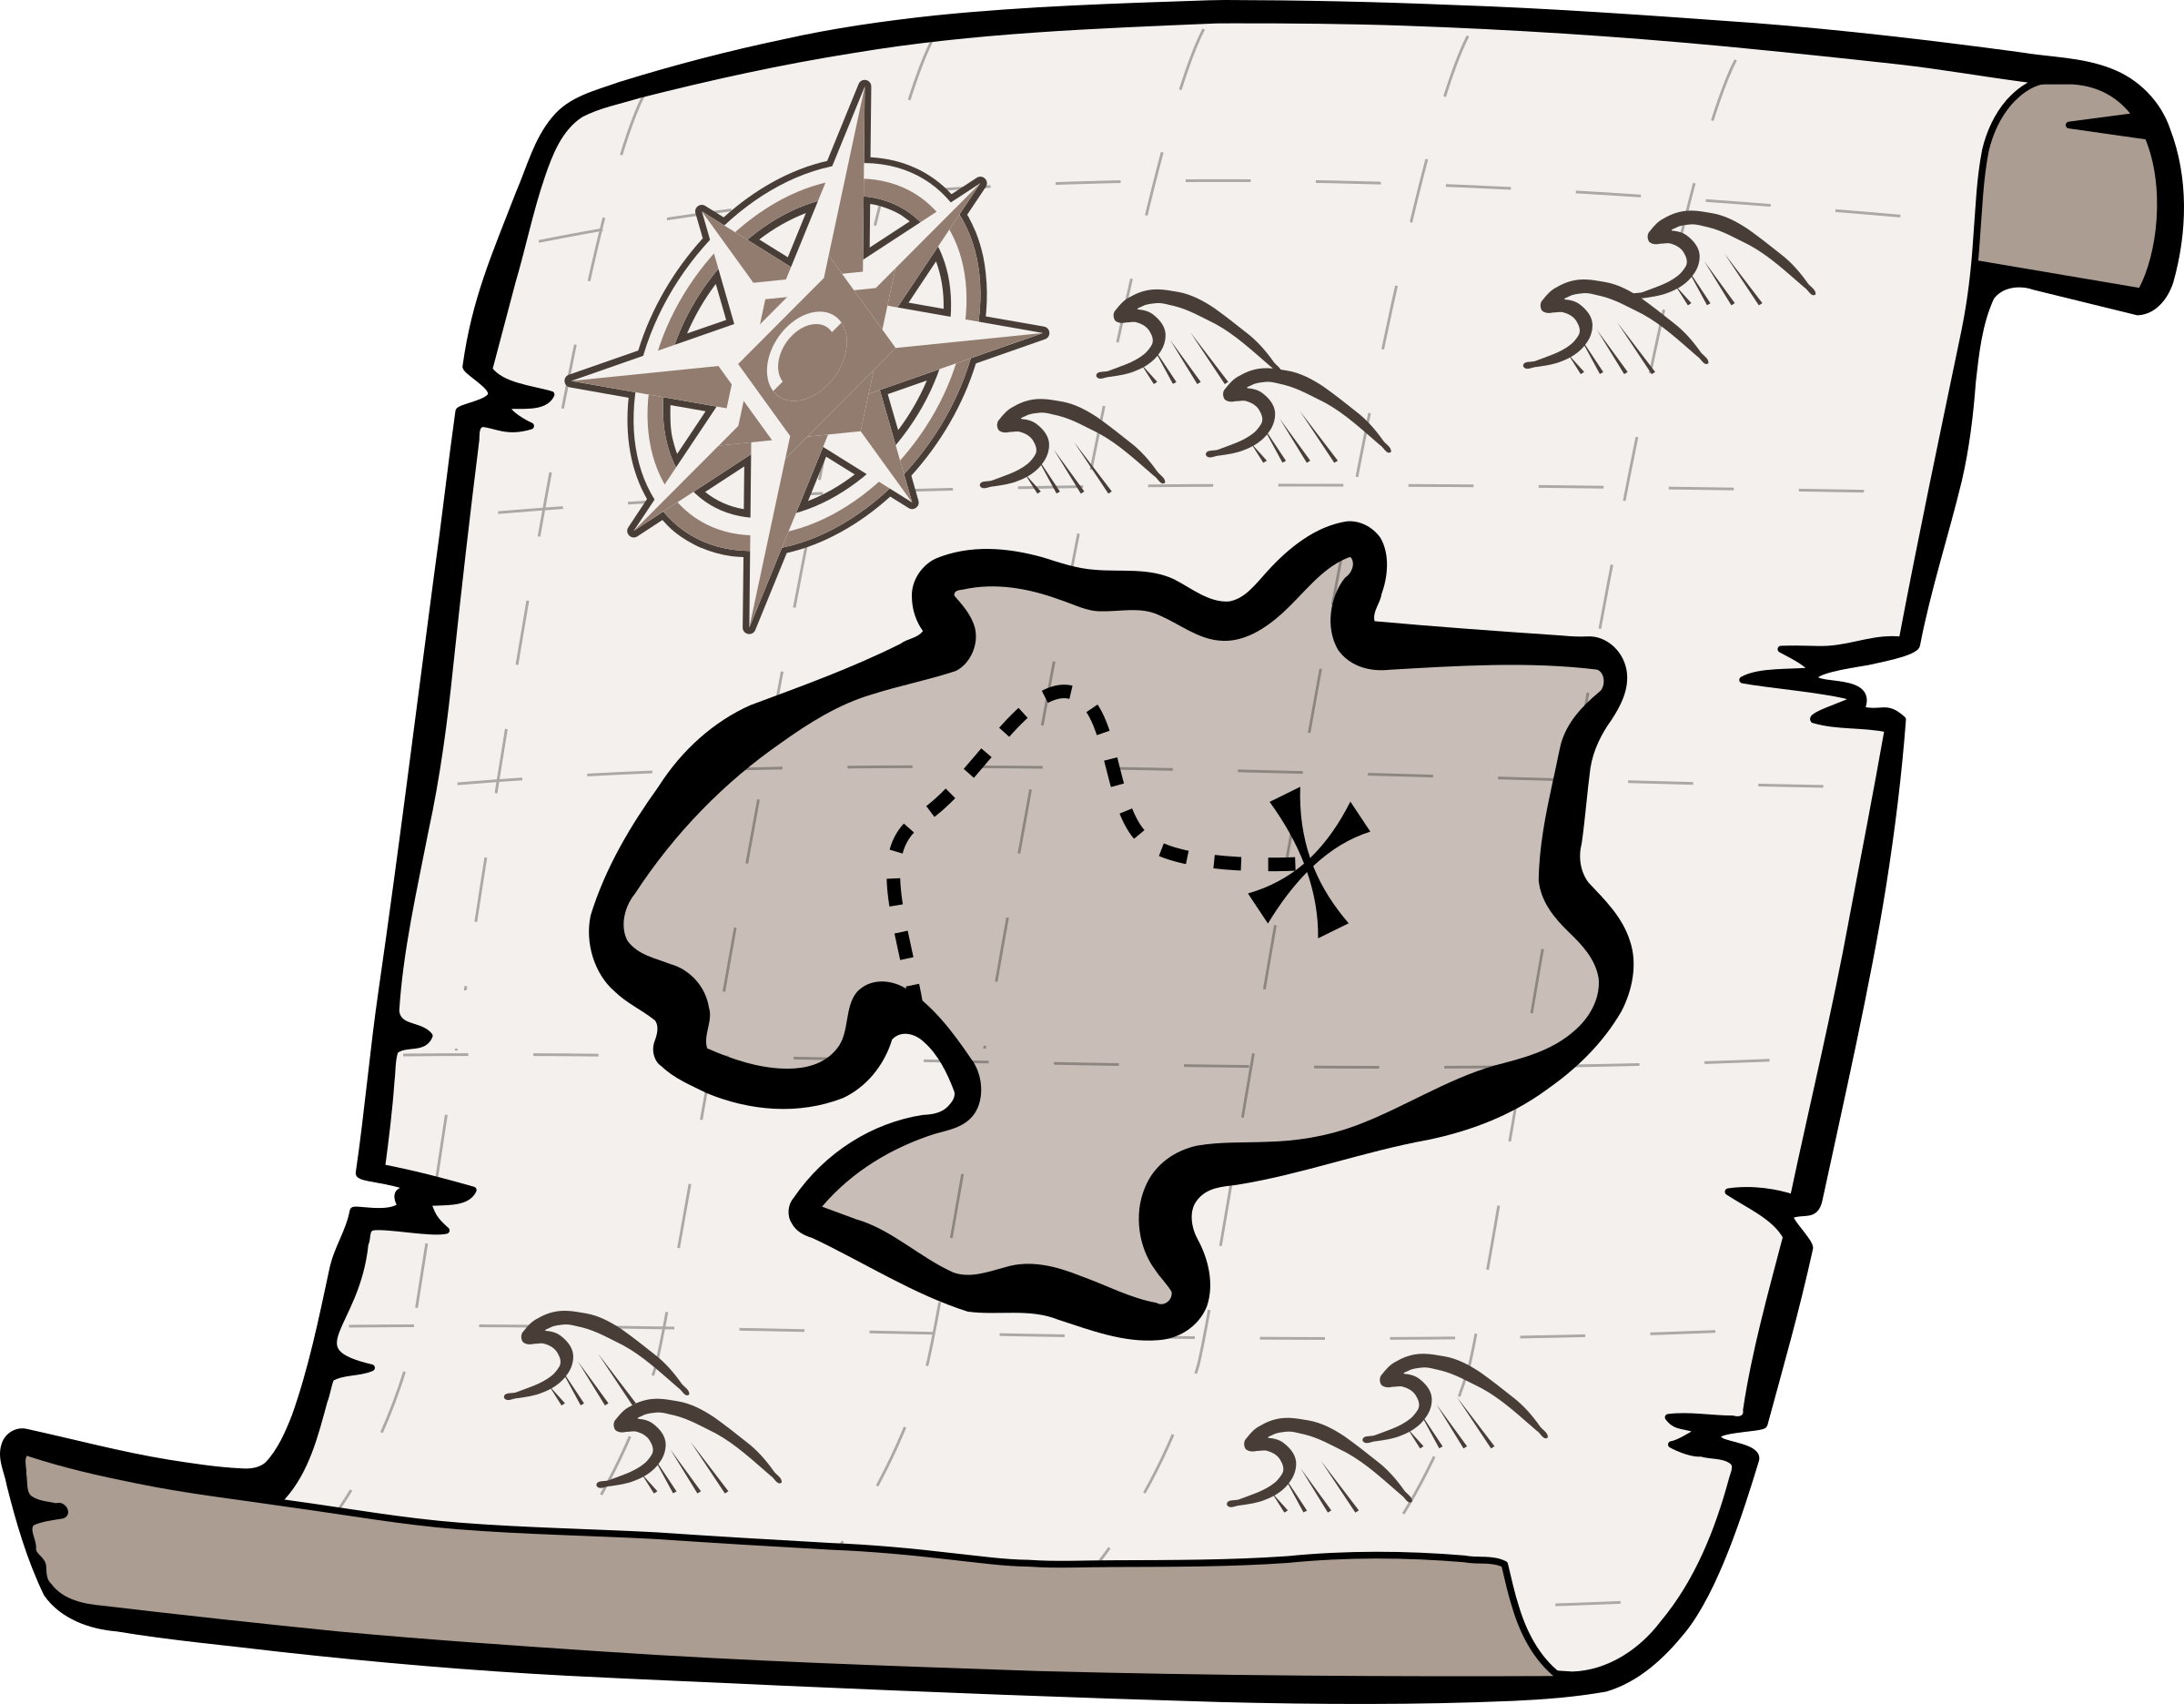 Treasure map big image. Curtain clipart black and white clip royalty free download